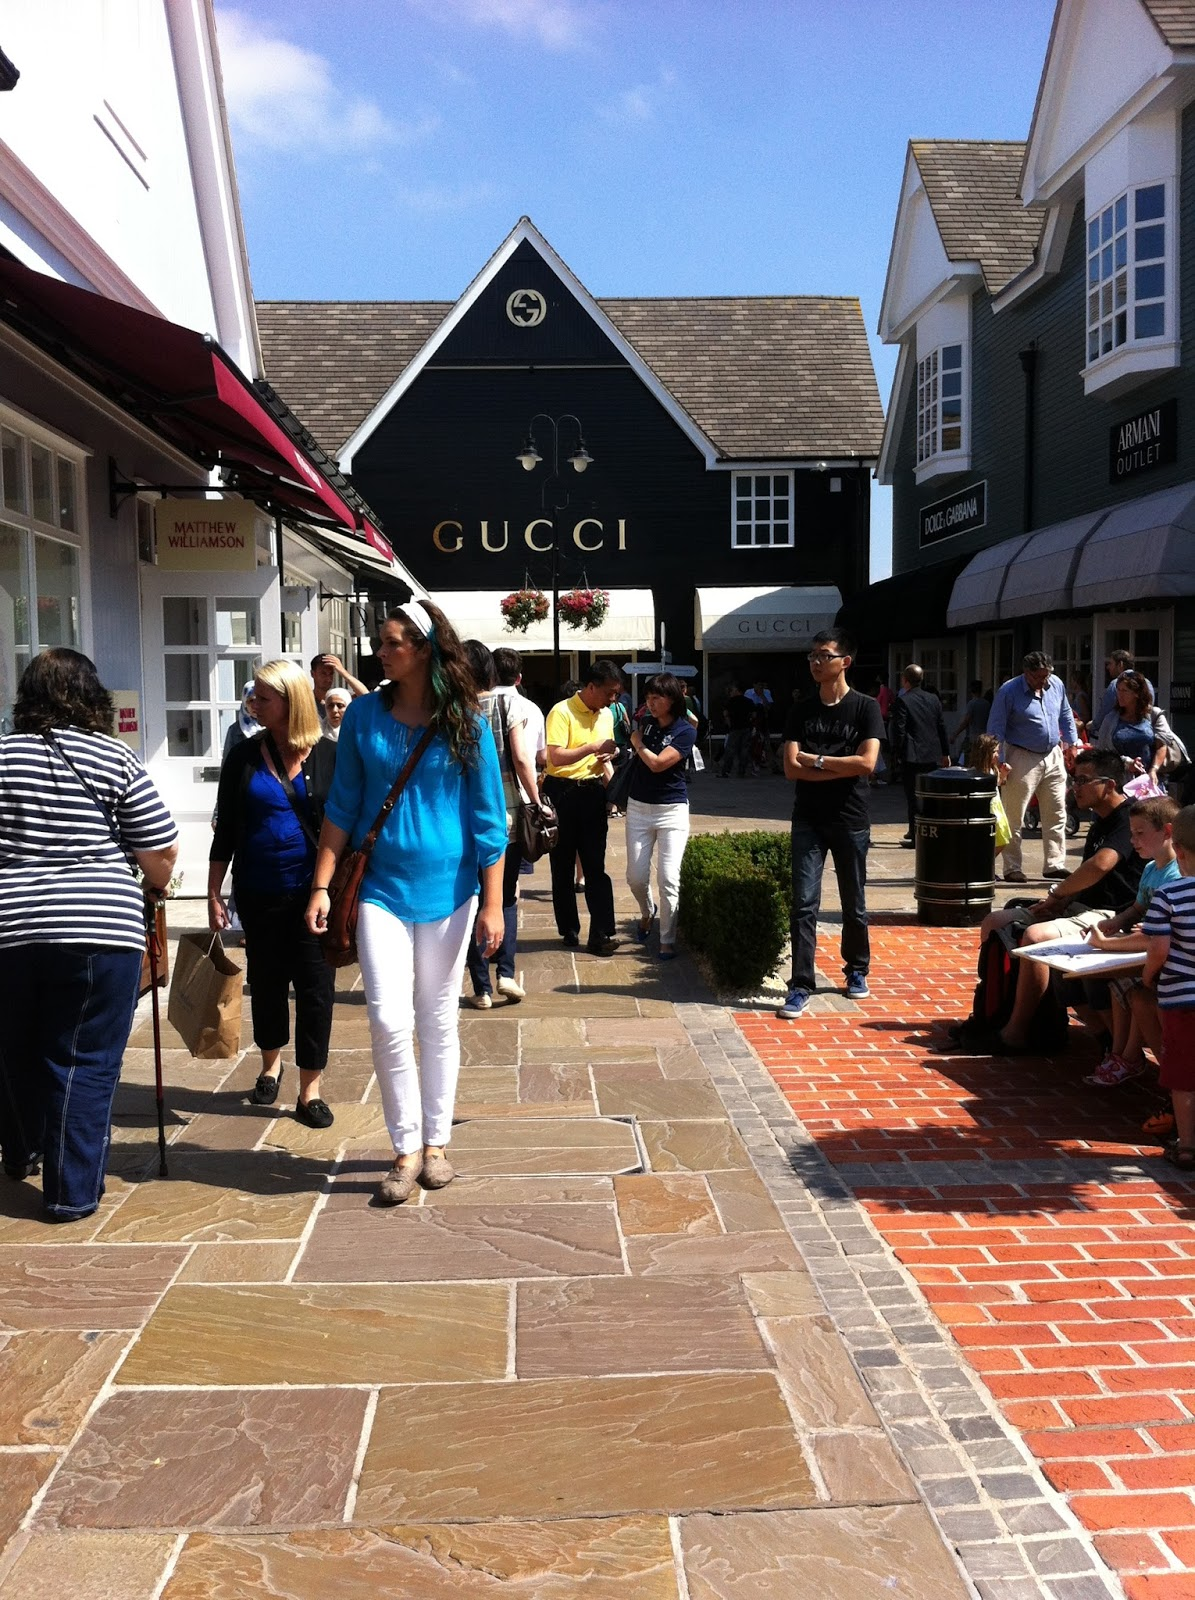 bicester women Want to know bicester village opening times the shopping village is open 7 days a week monday to saturday 9am until 9pm on sunday 9am until 8pm.